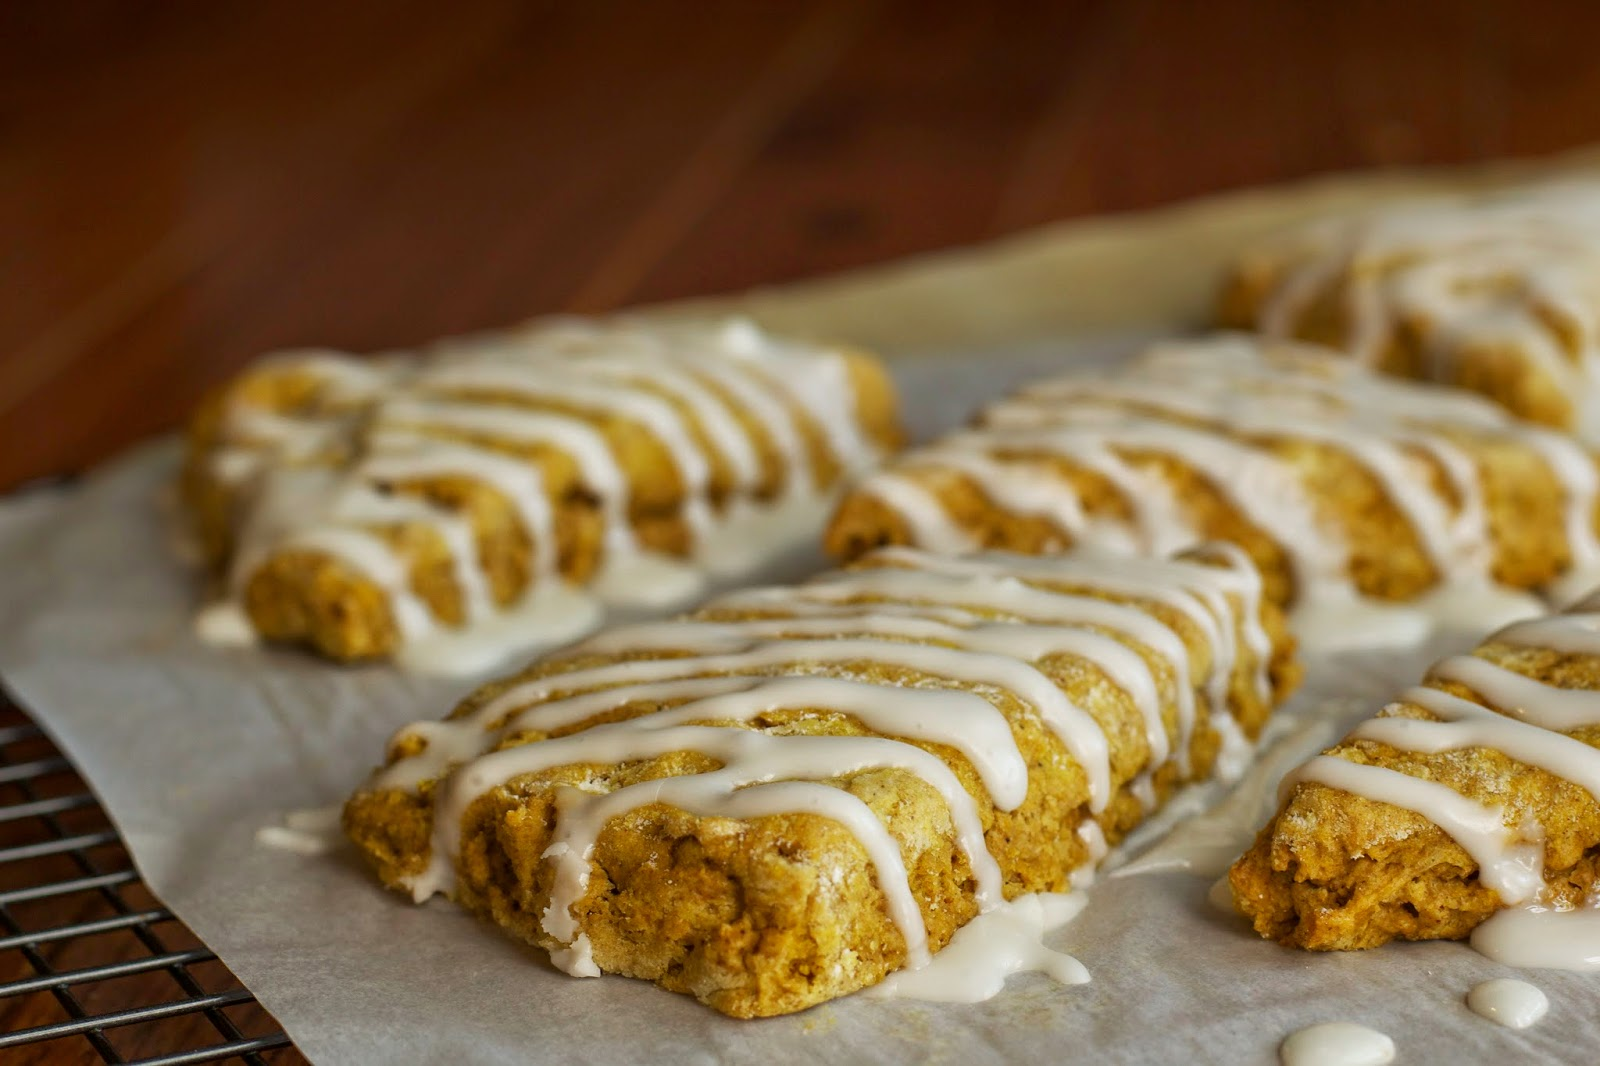 Starbucks Pumpkin Scones Copycat Recipe Goes Gluten Free & Egg Free ...